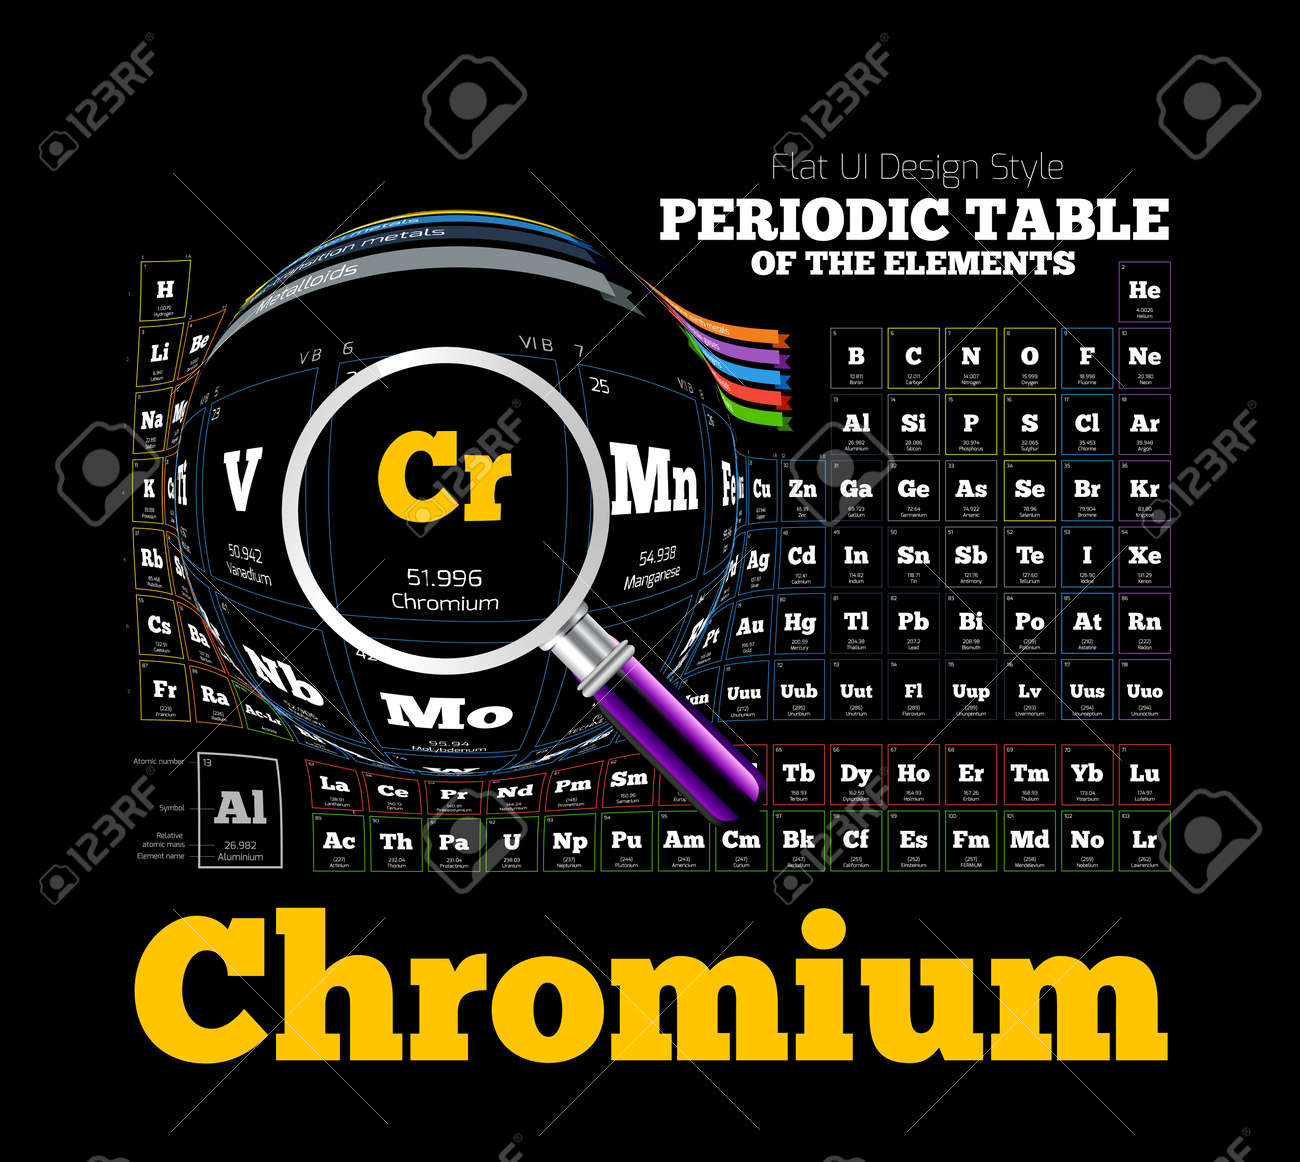 Periodic table of the element chromium cr royalty free cliparts periodic table of the element chromium cr stock vector 36419303 urtaz Image collections